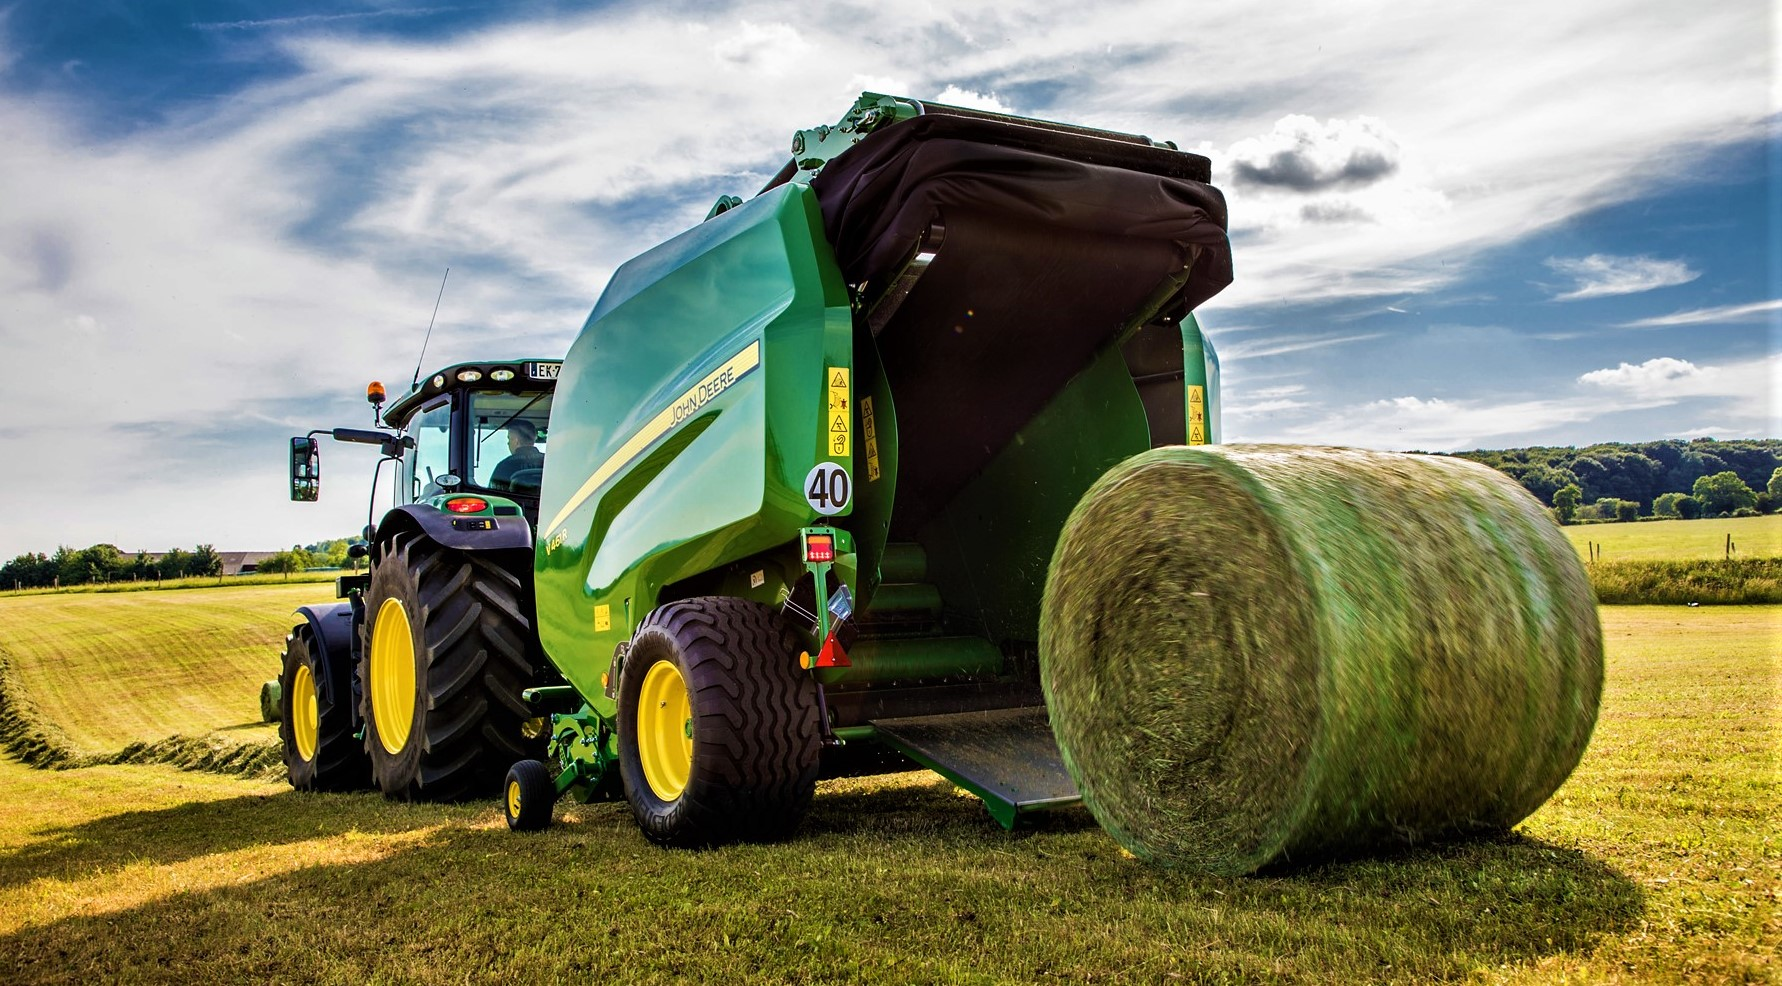 Pics: New round balers from machinery giant John Deere ...